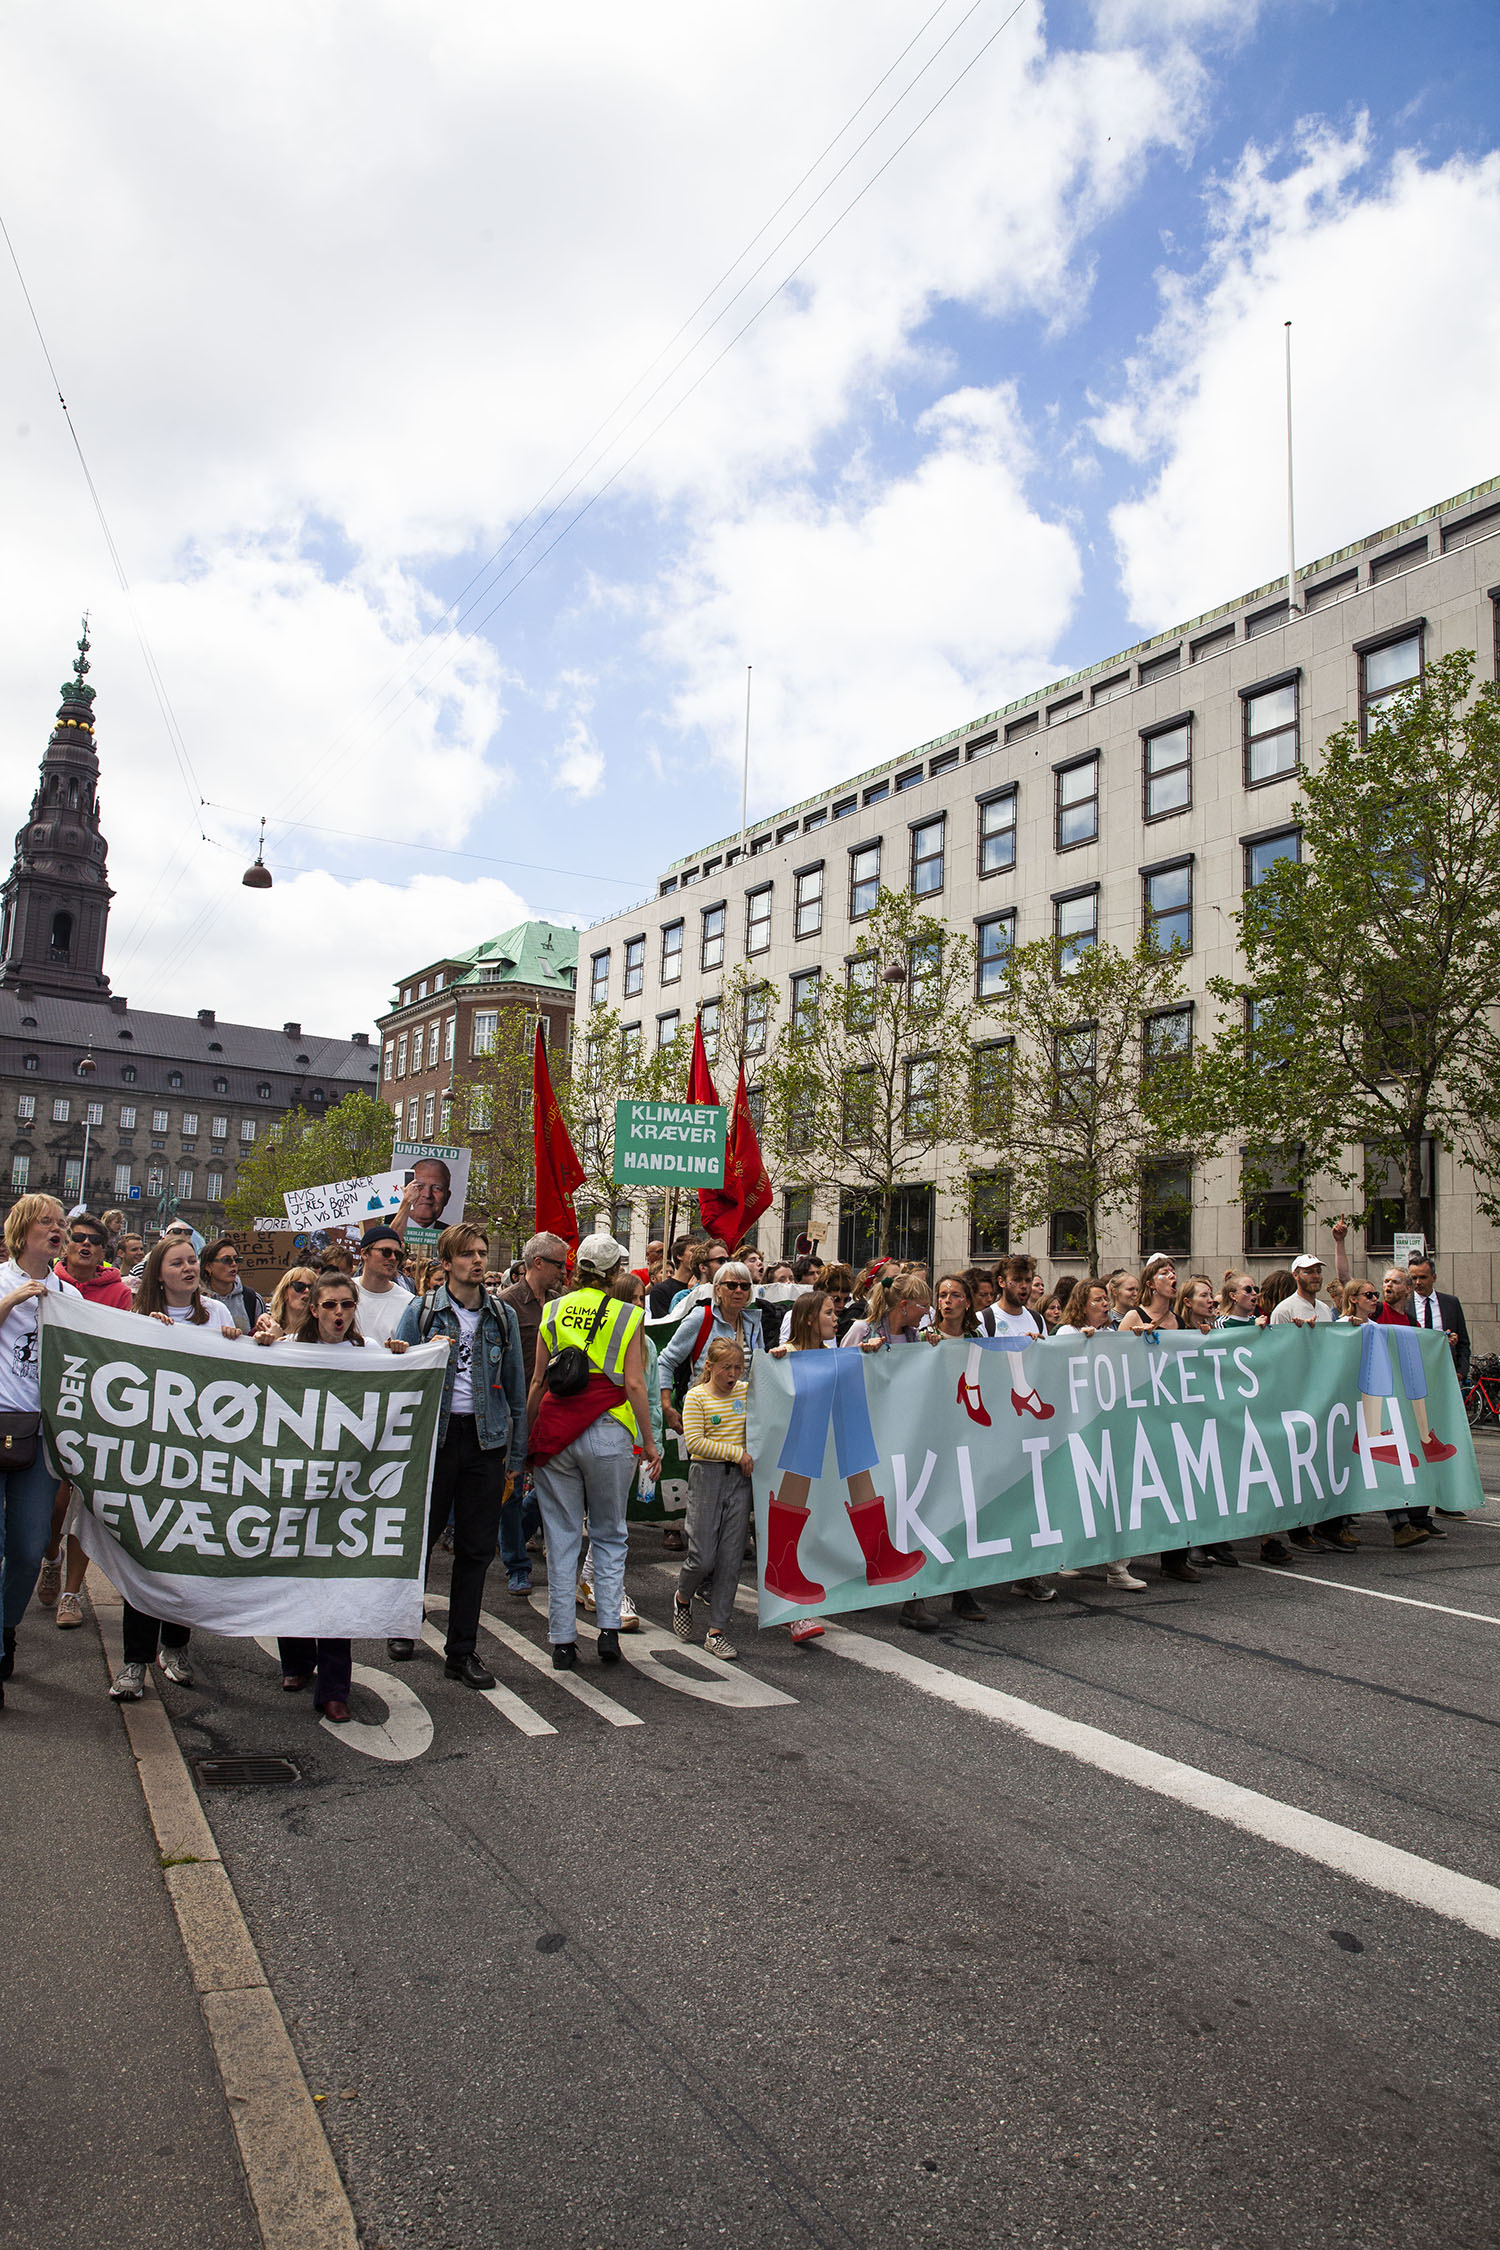 Klimamarch2019_HelenaLundquist_MG_8987_68.